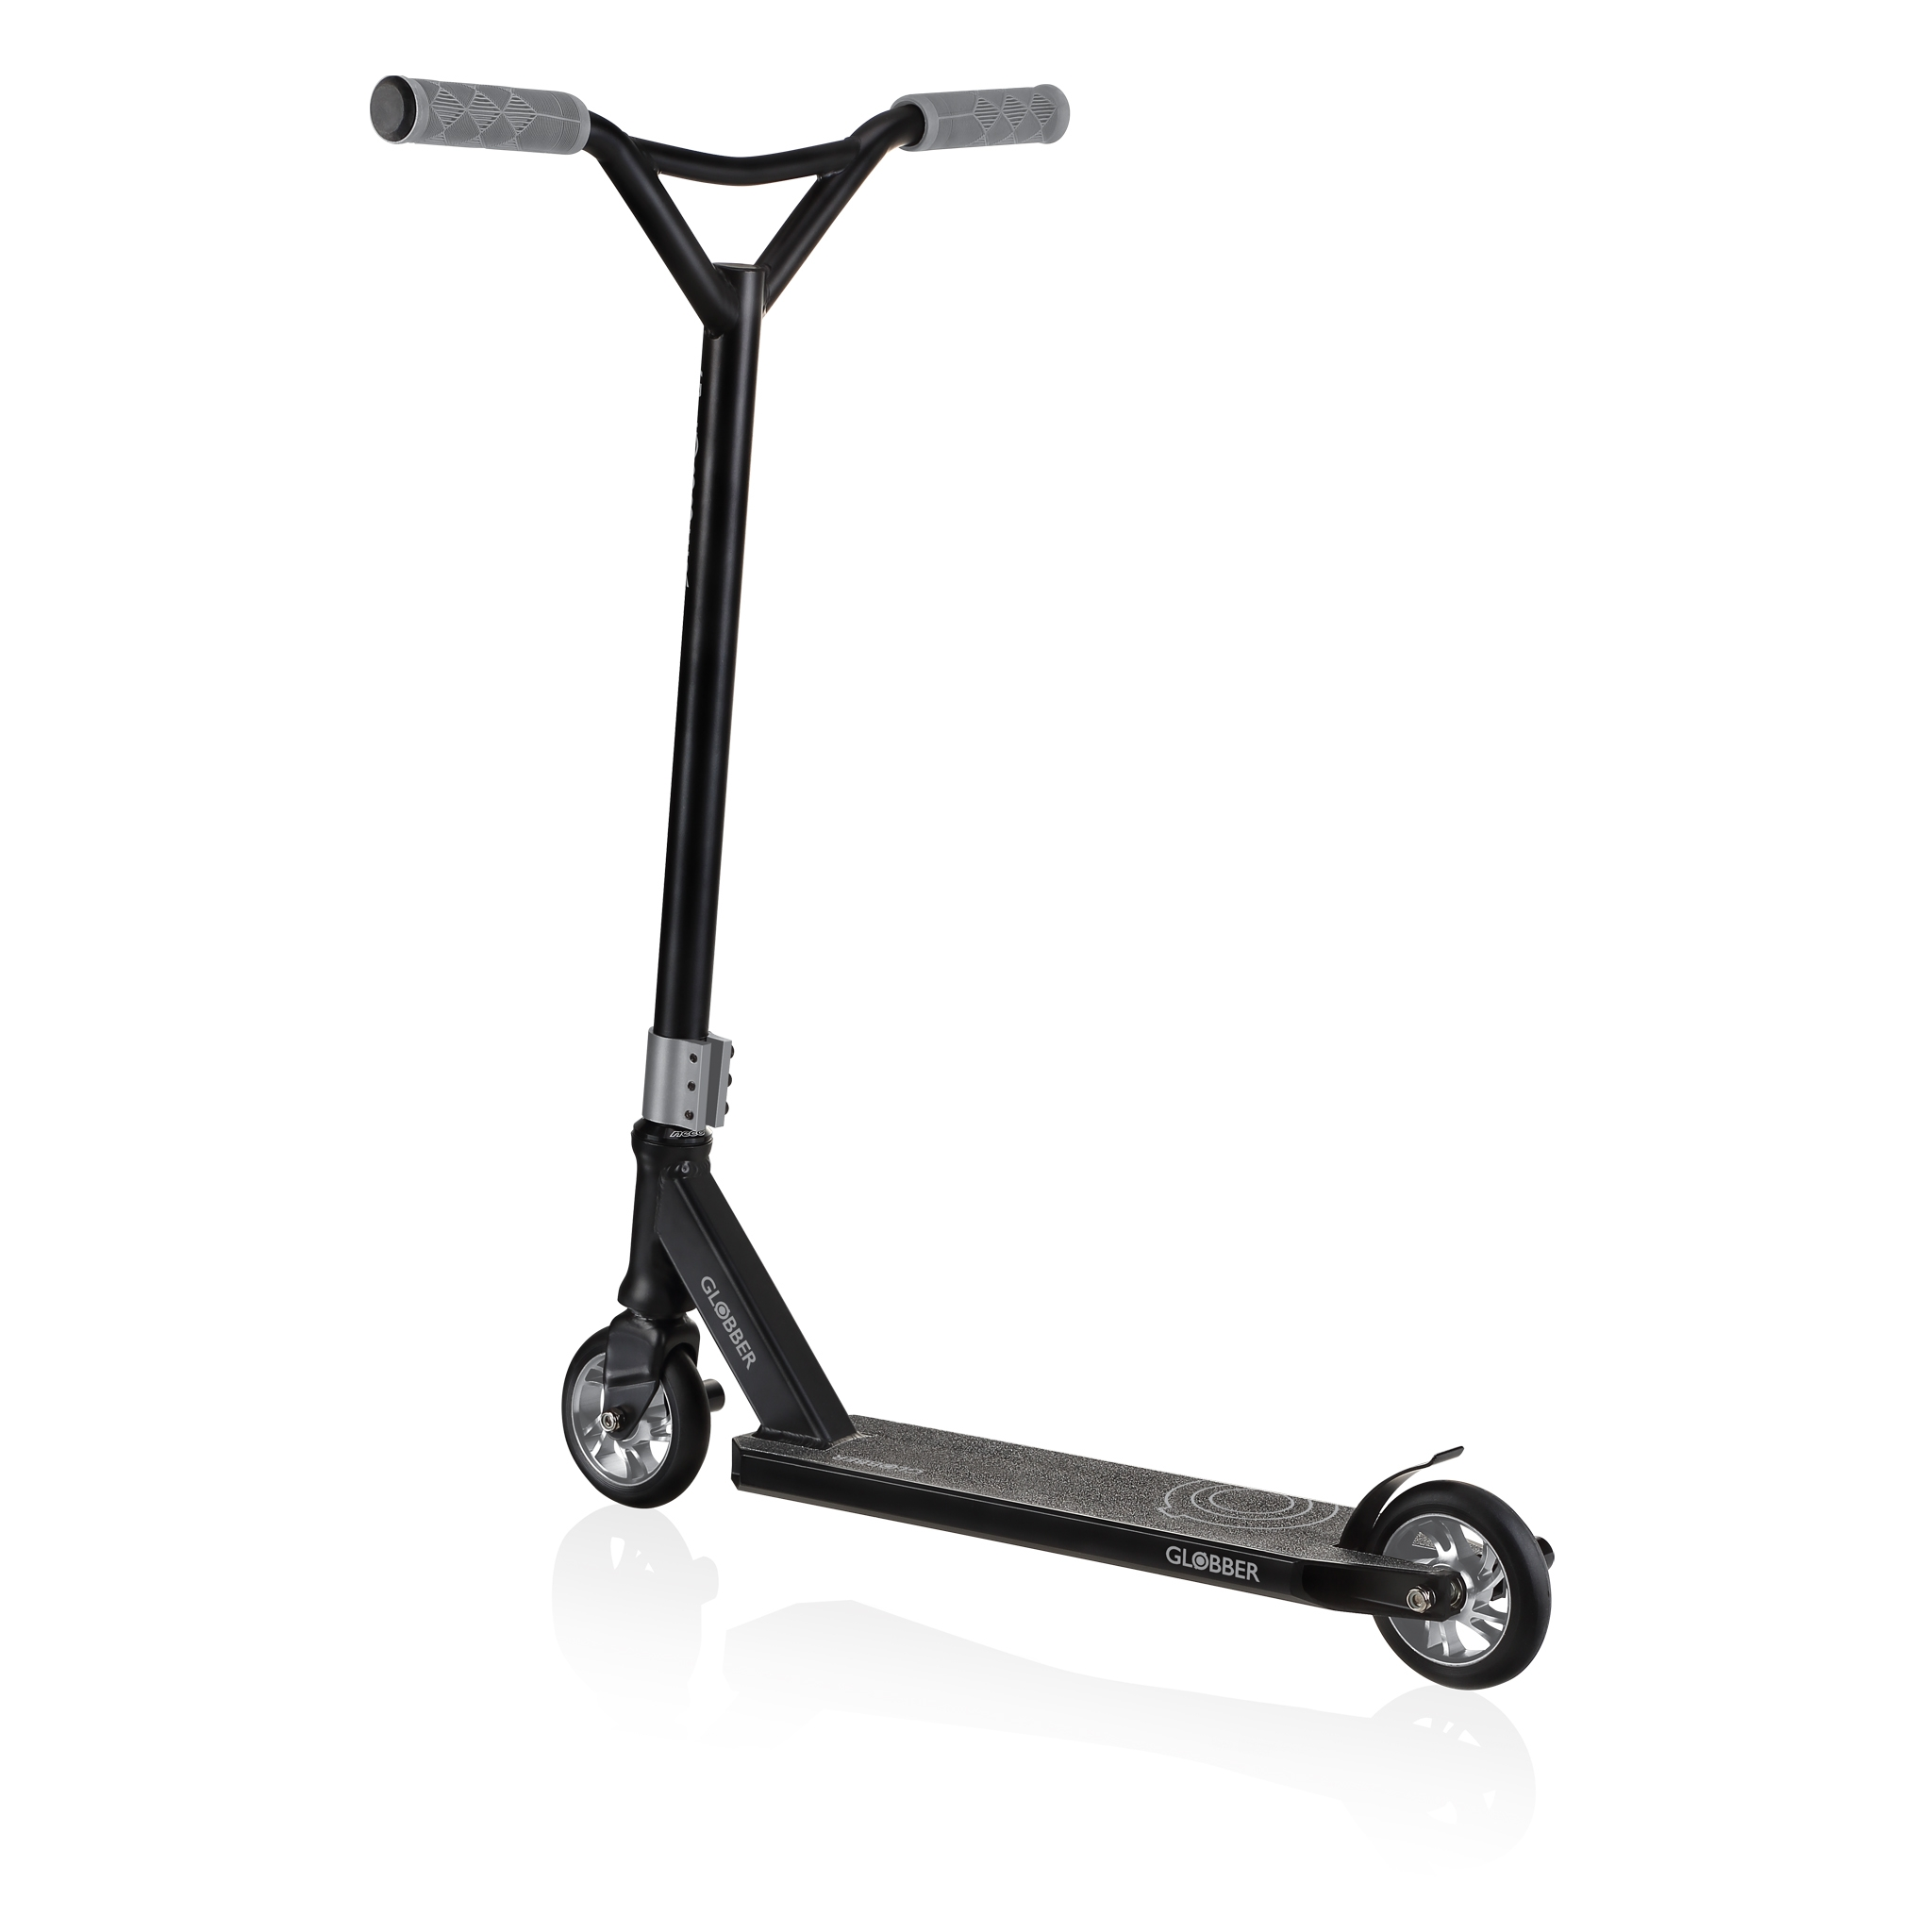 stunt scooter for teens aged 8+ - Globber GS 720 2